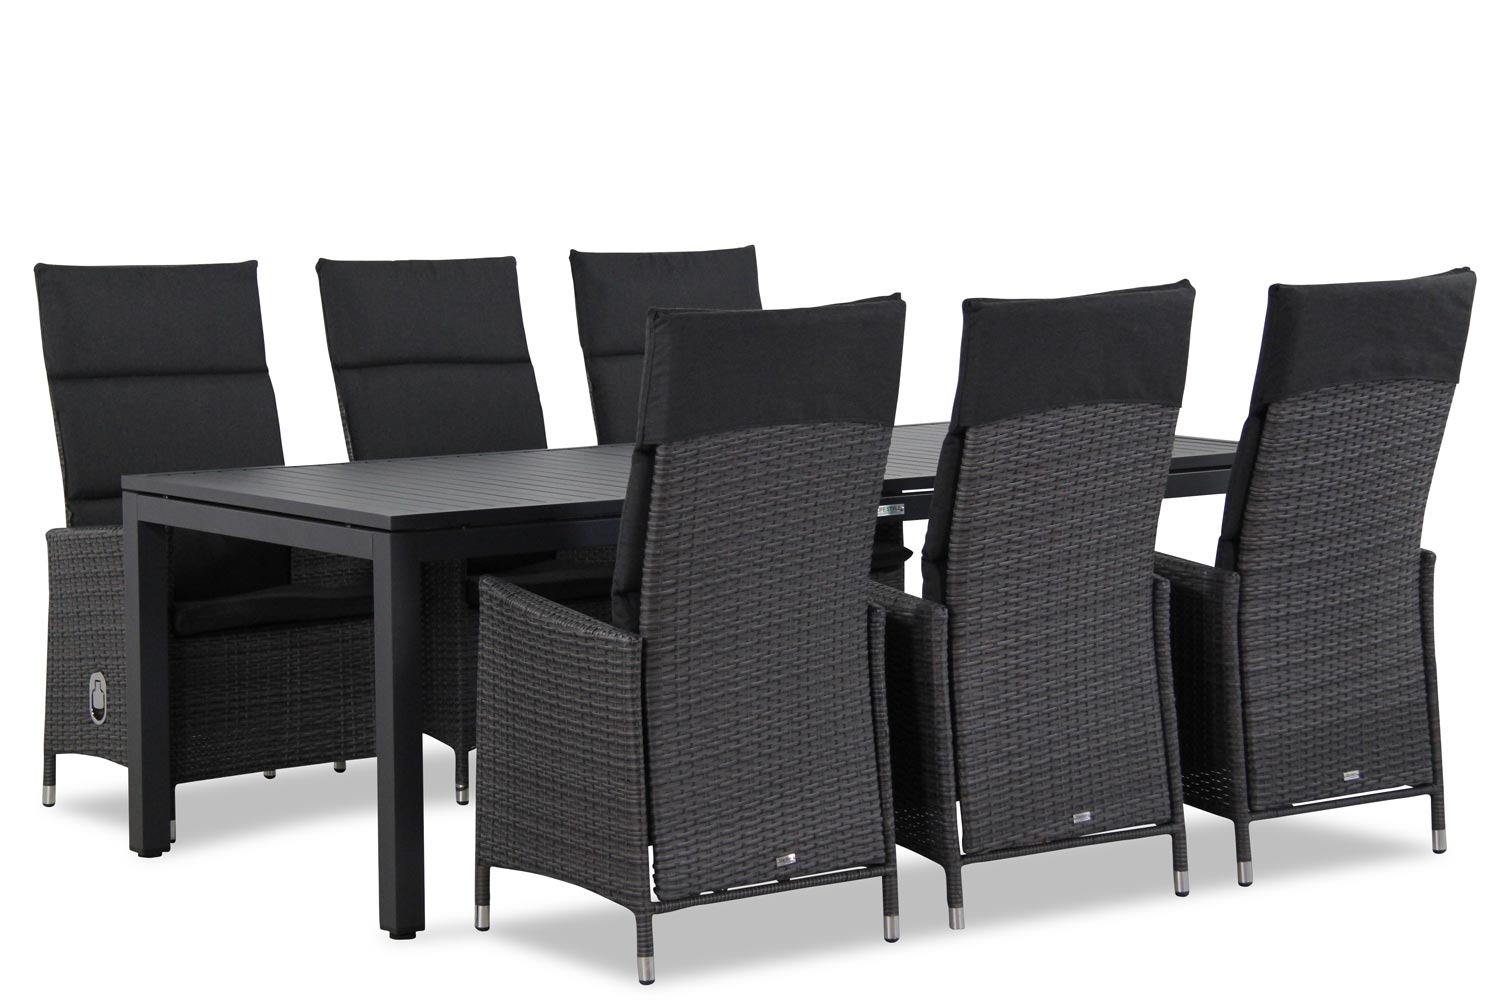 Wicker Garden Collections Denver/Concept 220 cm dining tuinset 7-delig verstelbaar